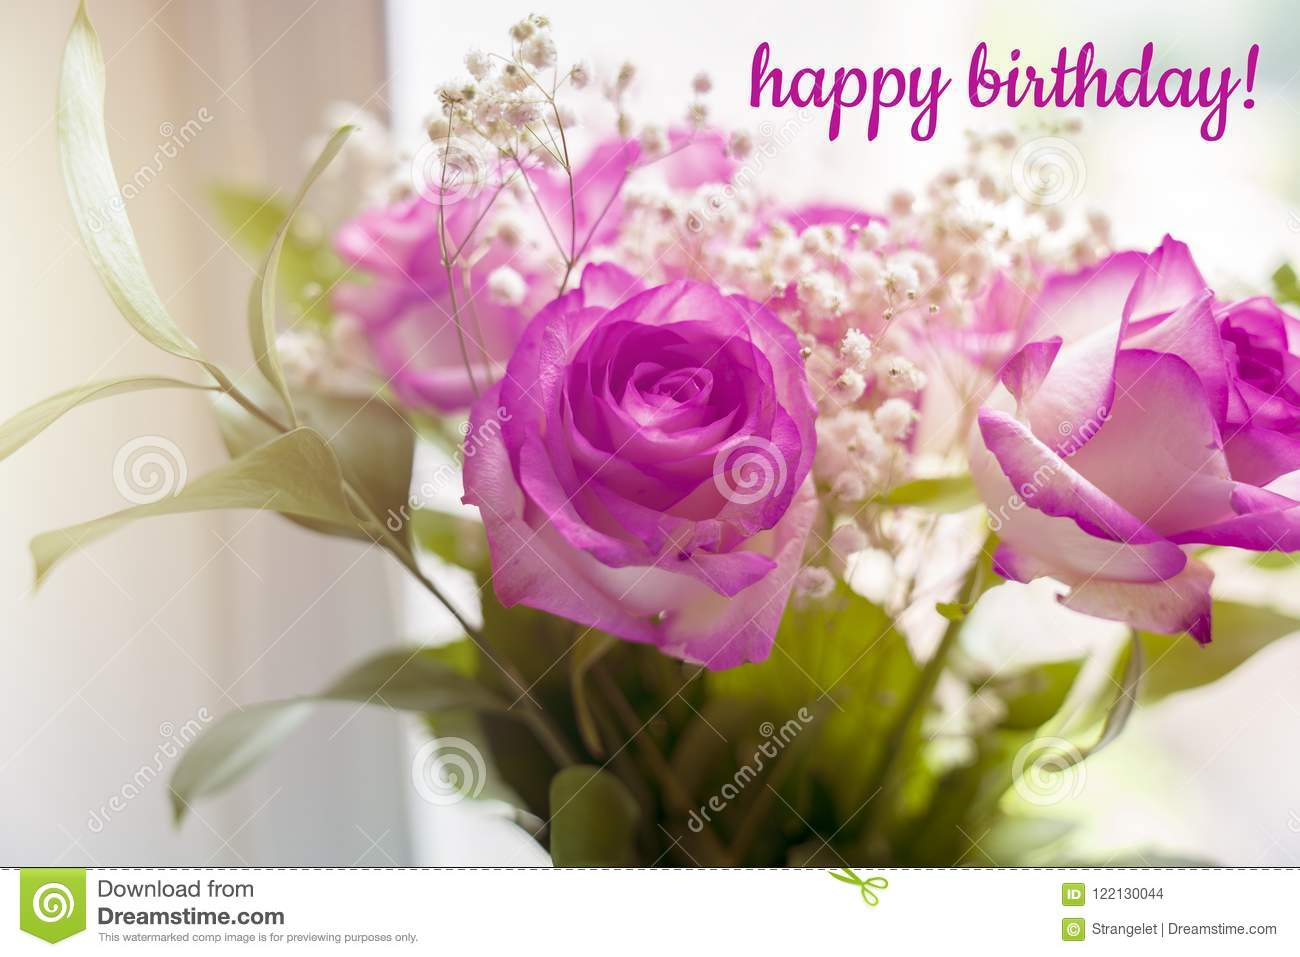 Beautiful Bouquet Of Roses On A Window With Text Happy Birthday